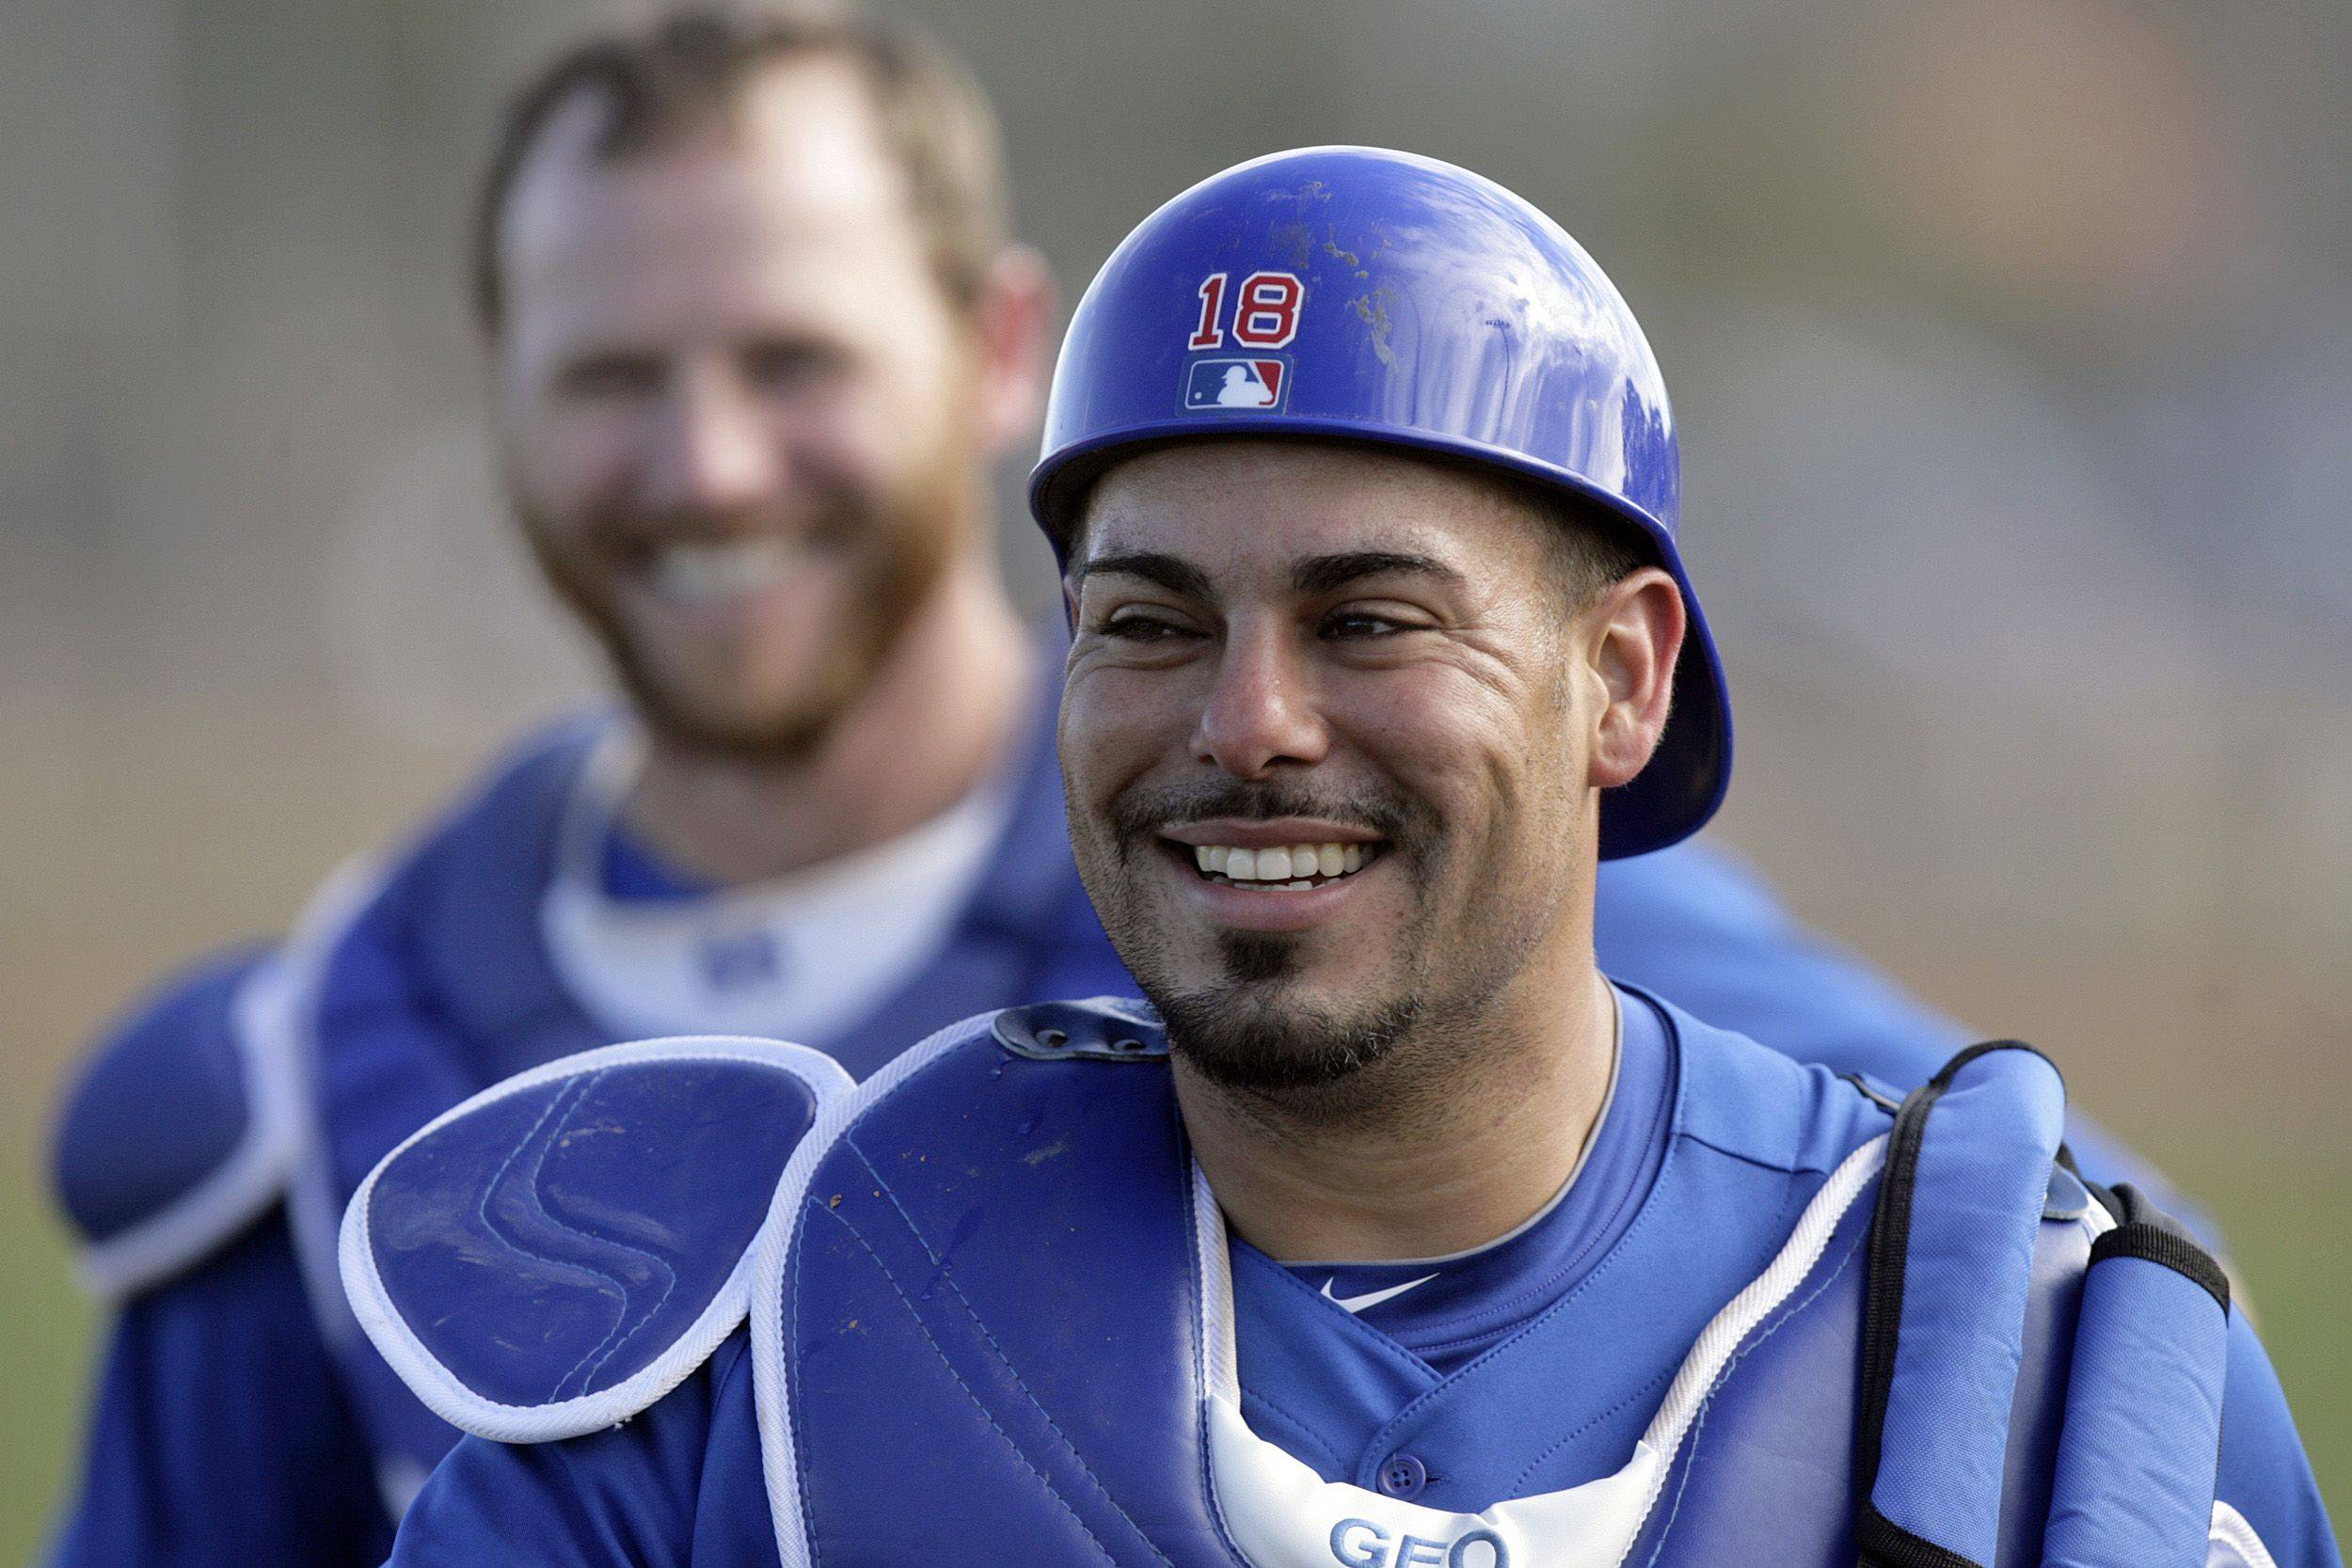 Chicago Cubs catchers Geovany Soto, right, and Koyie Hill make their way to a practice field to run drills during baseball spring training Monday, Feb. 21, 2011, in Mesa, Ariz.